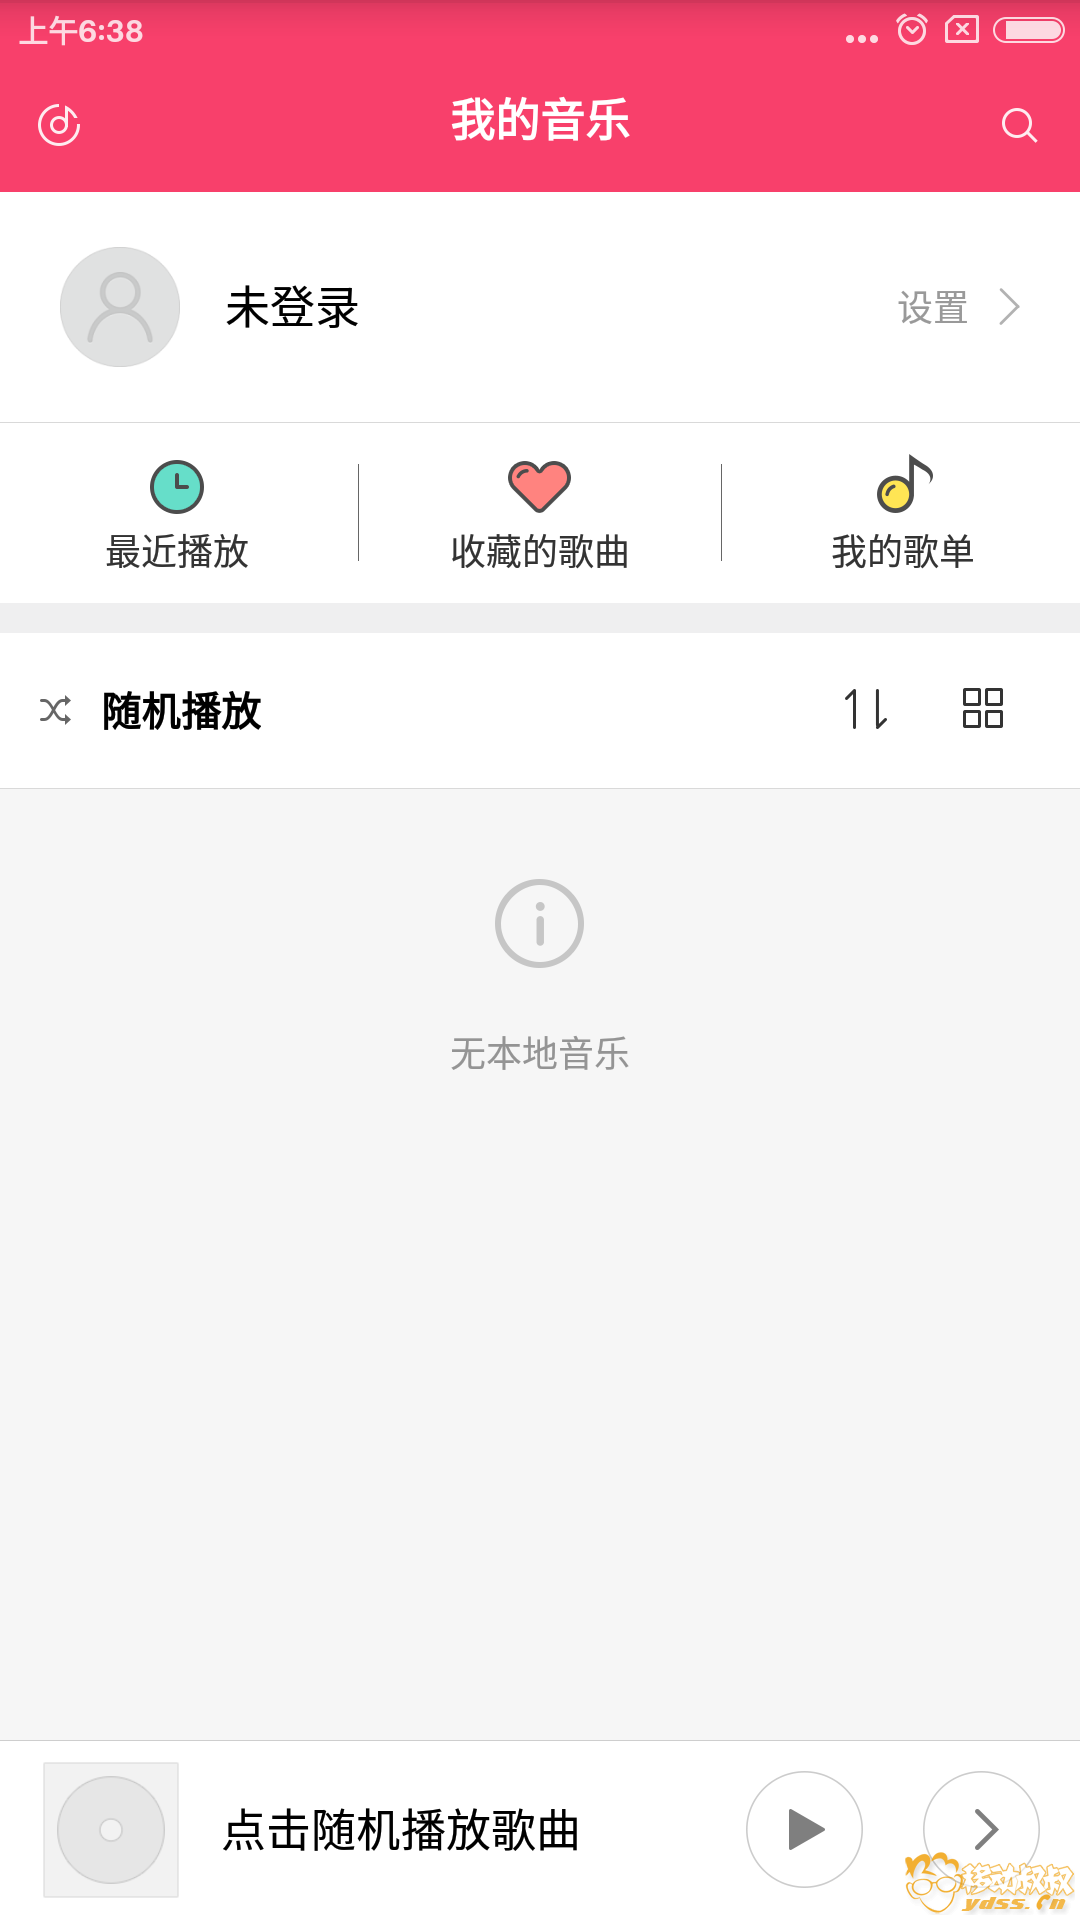 Screenshot_2018-02-10-06-38-11-126_com.miui.player.png